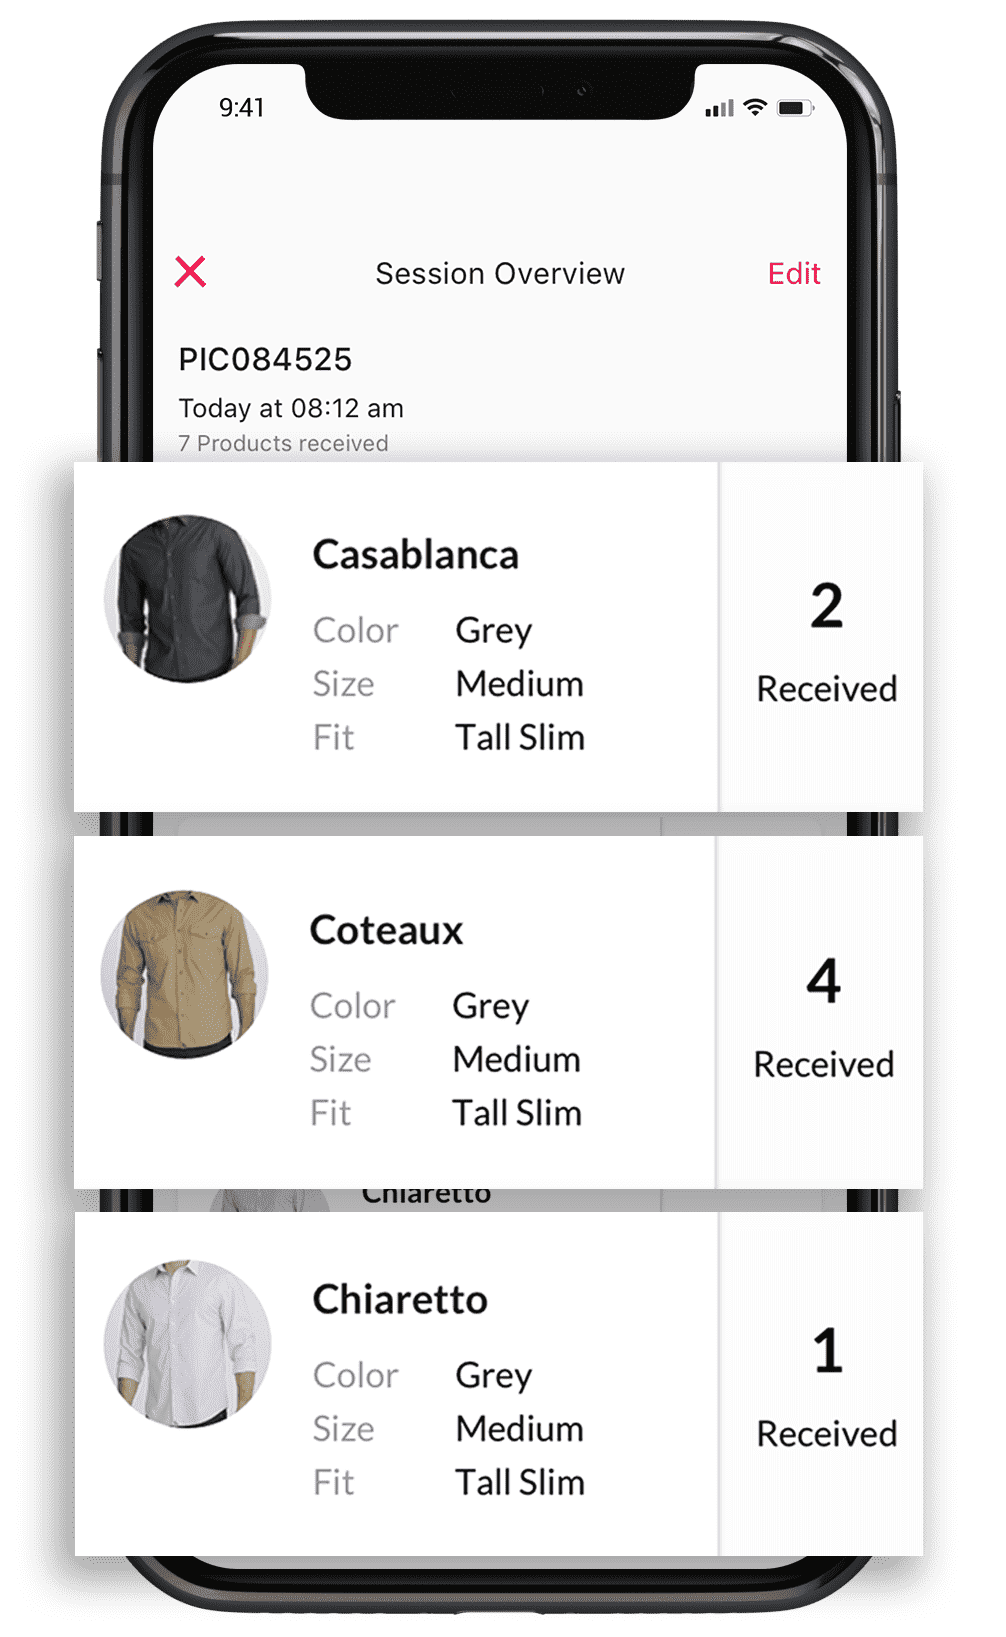 Customized omnichannel dashboards for a single view